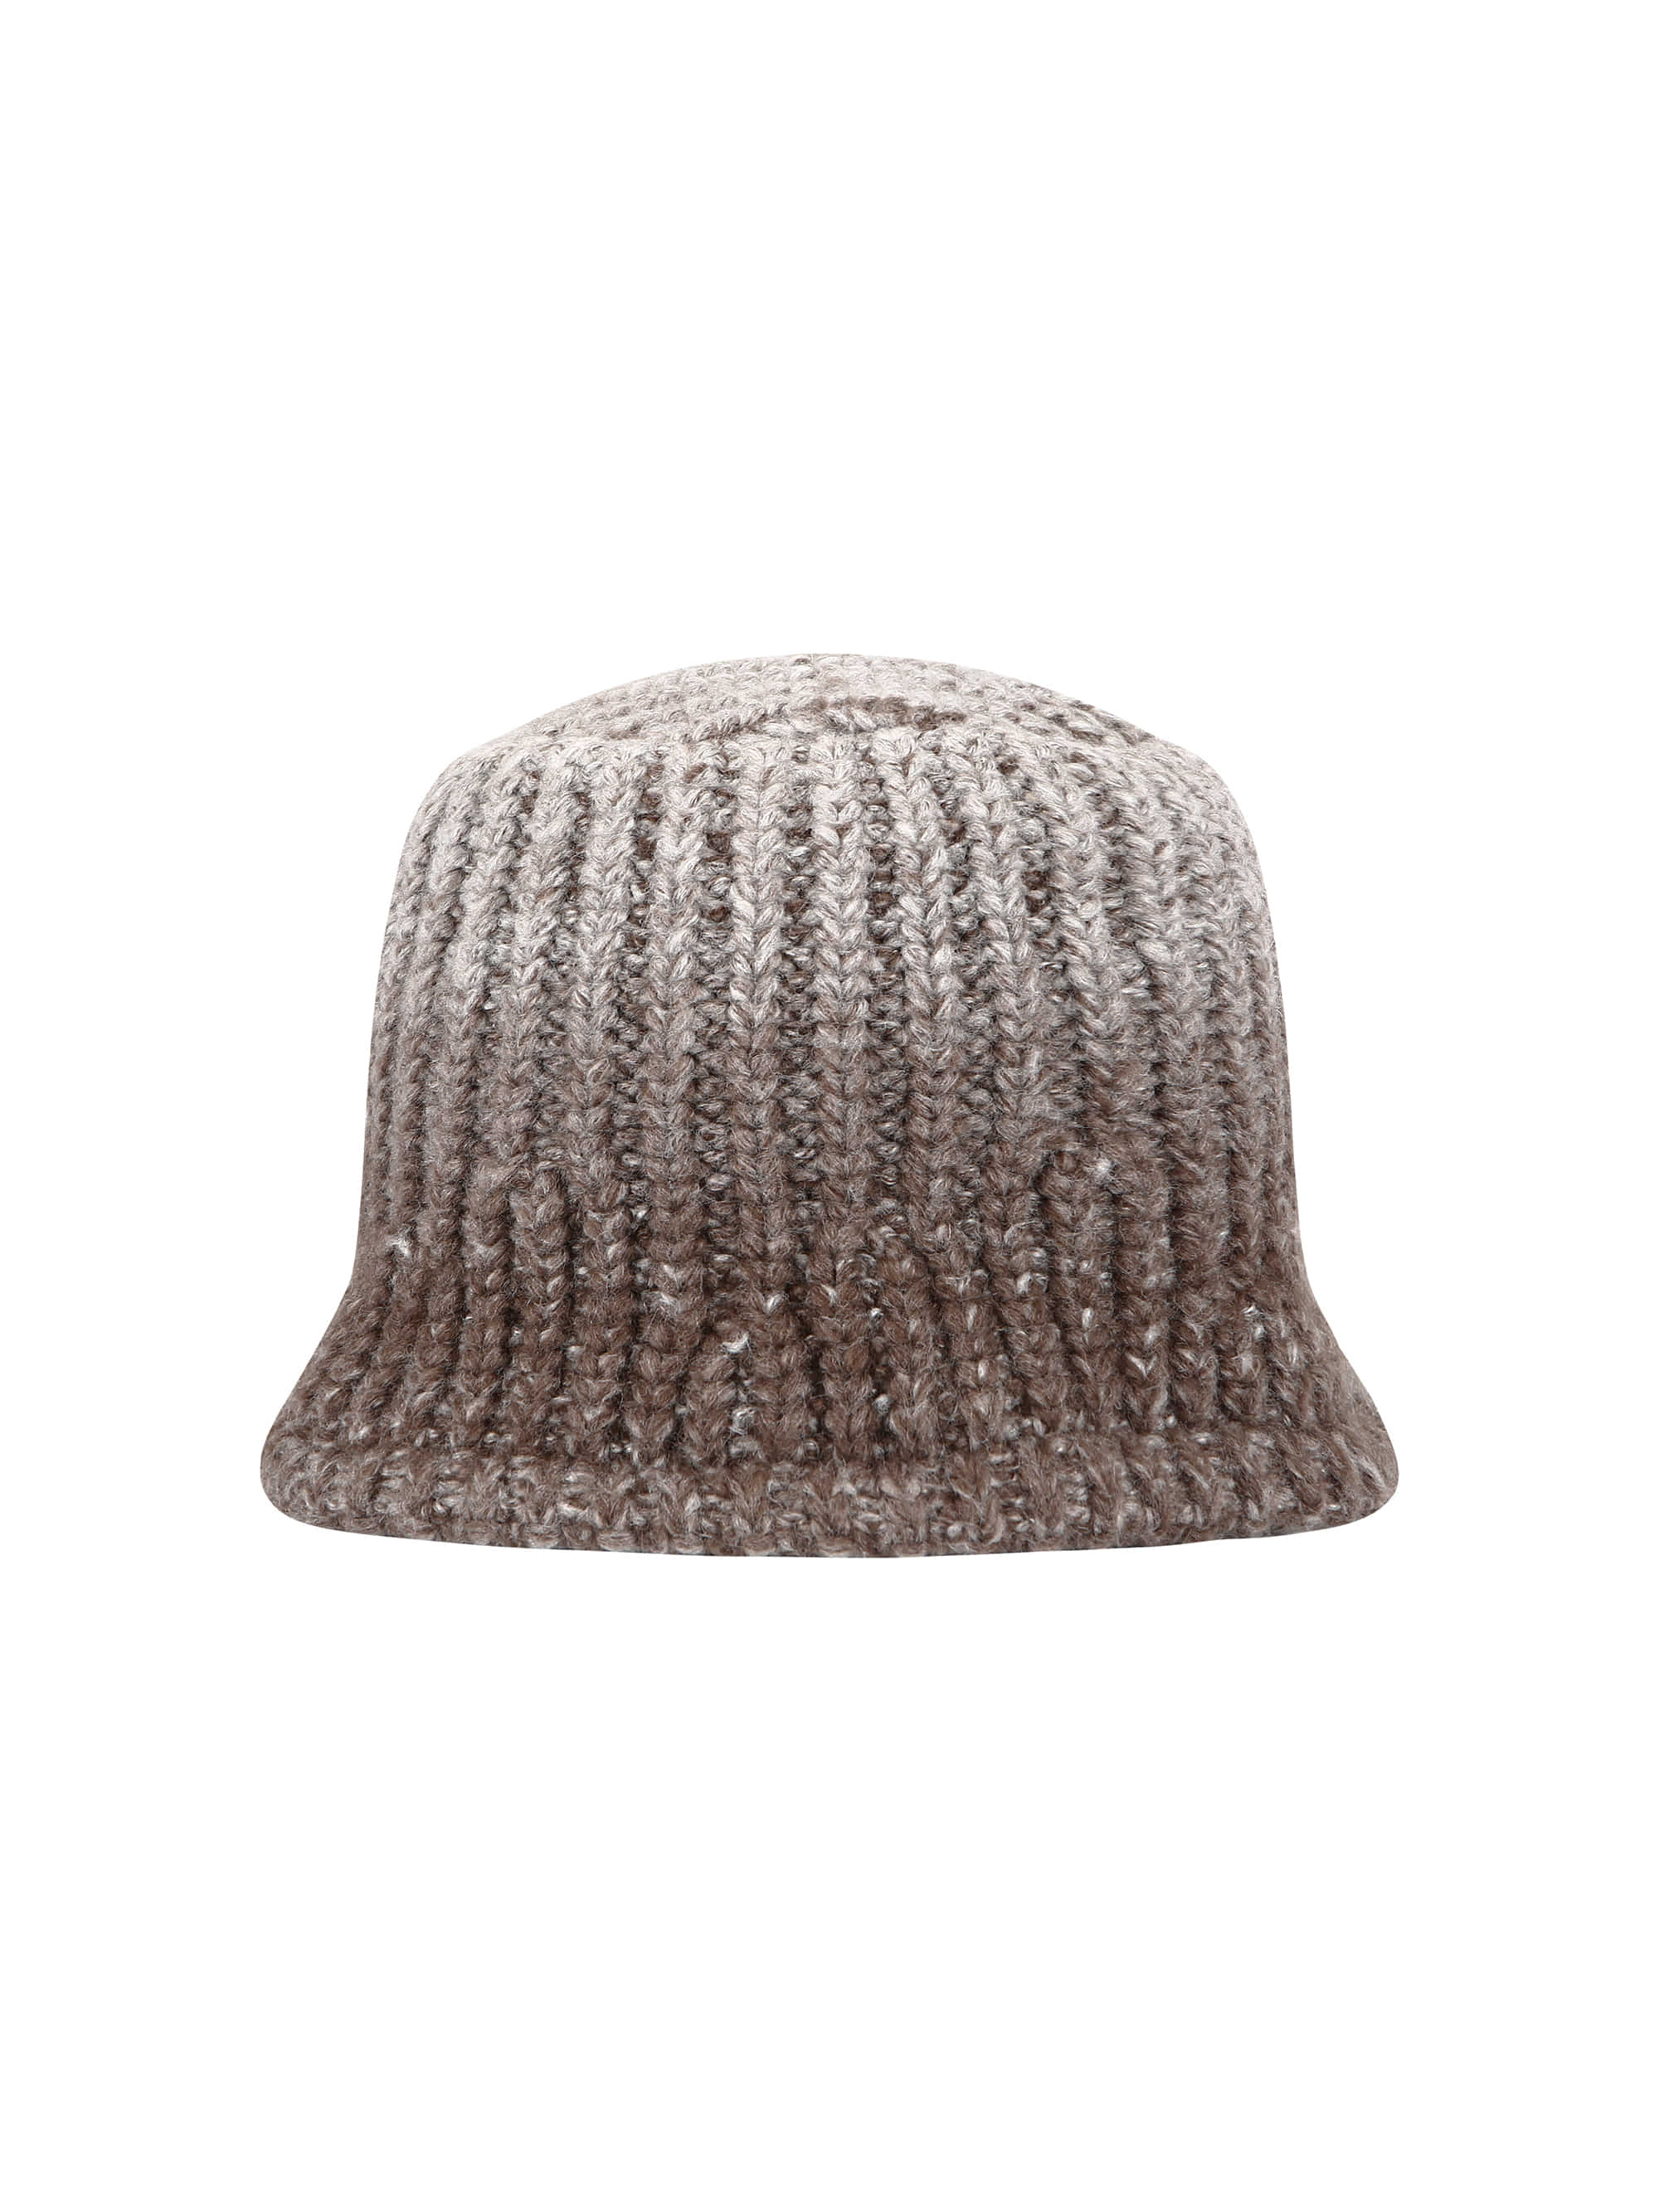 GRADATION KNIT BUCKET HAT (BROWN)